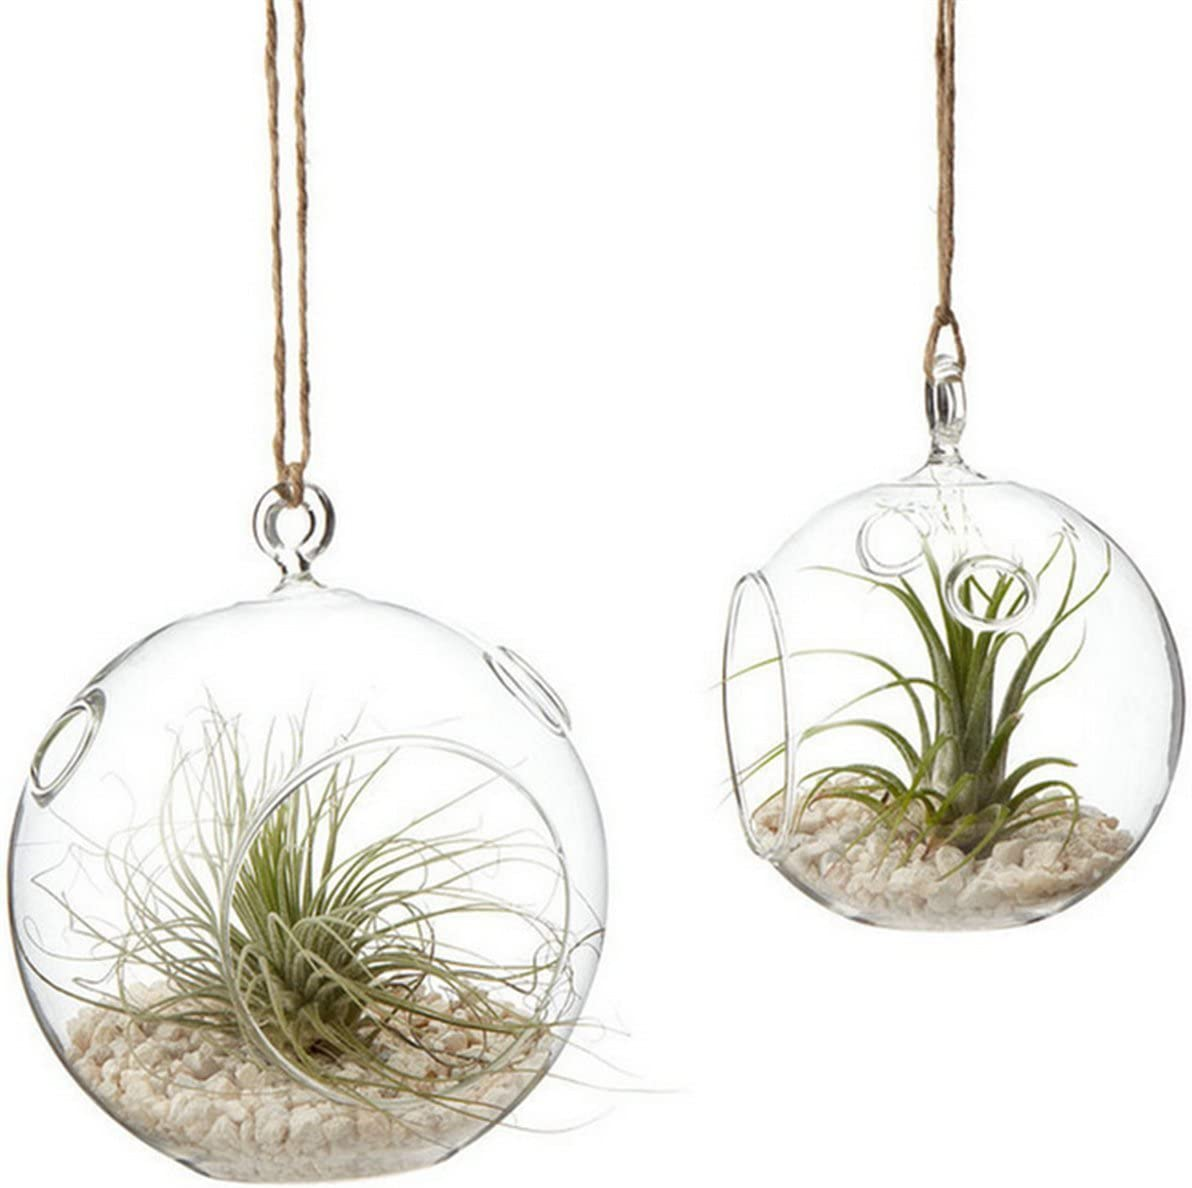 Kingbuy Hanging Glass Terrariums for Succulents and Air Plants, Large Glass Orb Planters set of 2 12cm